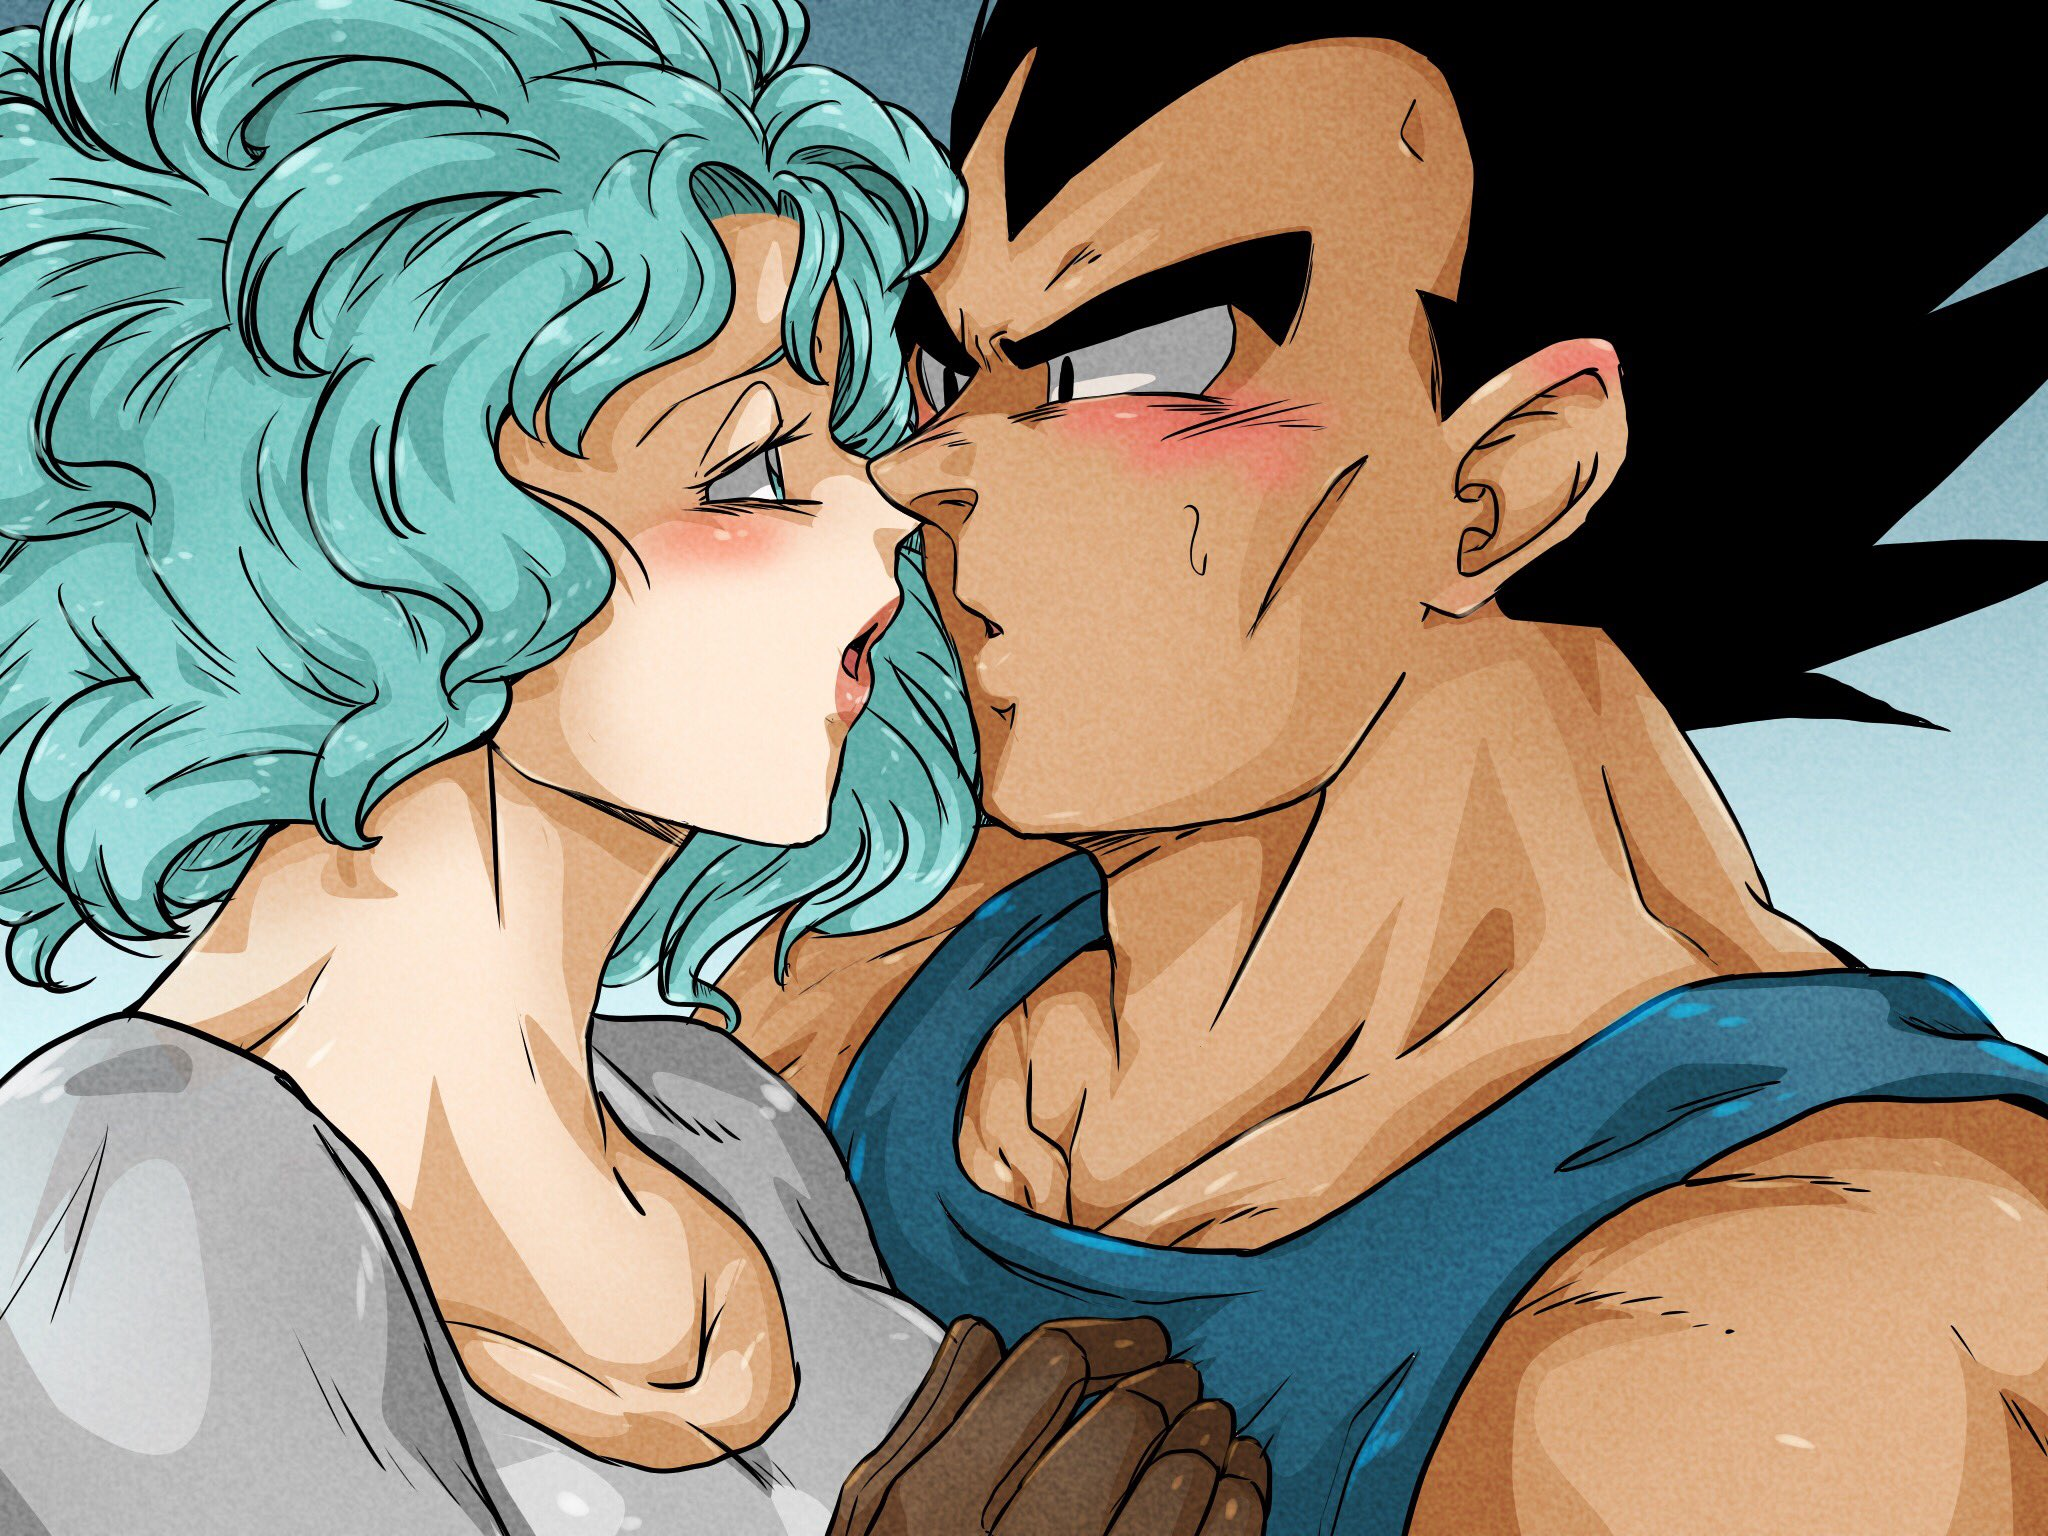 """BatViolett on Twitter: """"And Part 3 of Tension, or how I call it now: A  woman's weapons more to come asap :) #vegebul #vegebulday #69fes #vegeta # bulma #tension #dbz… https://t.co/cujpkRQzDs"""""""